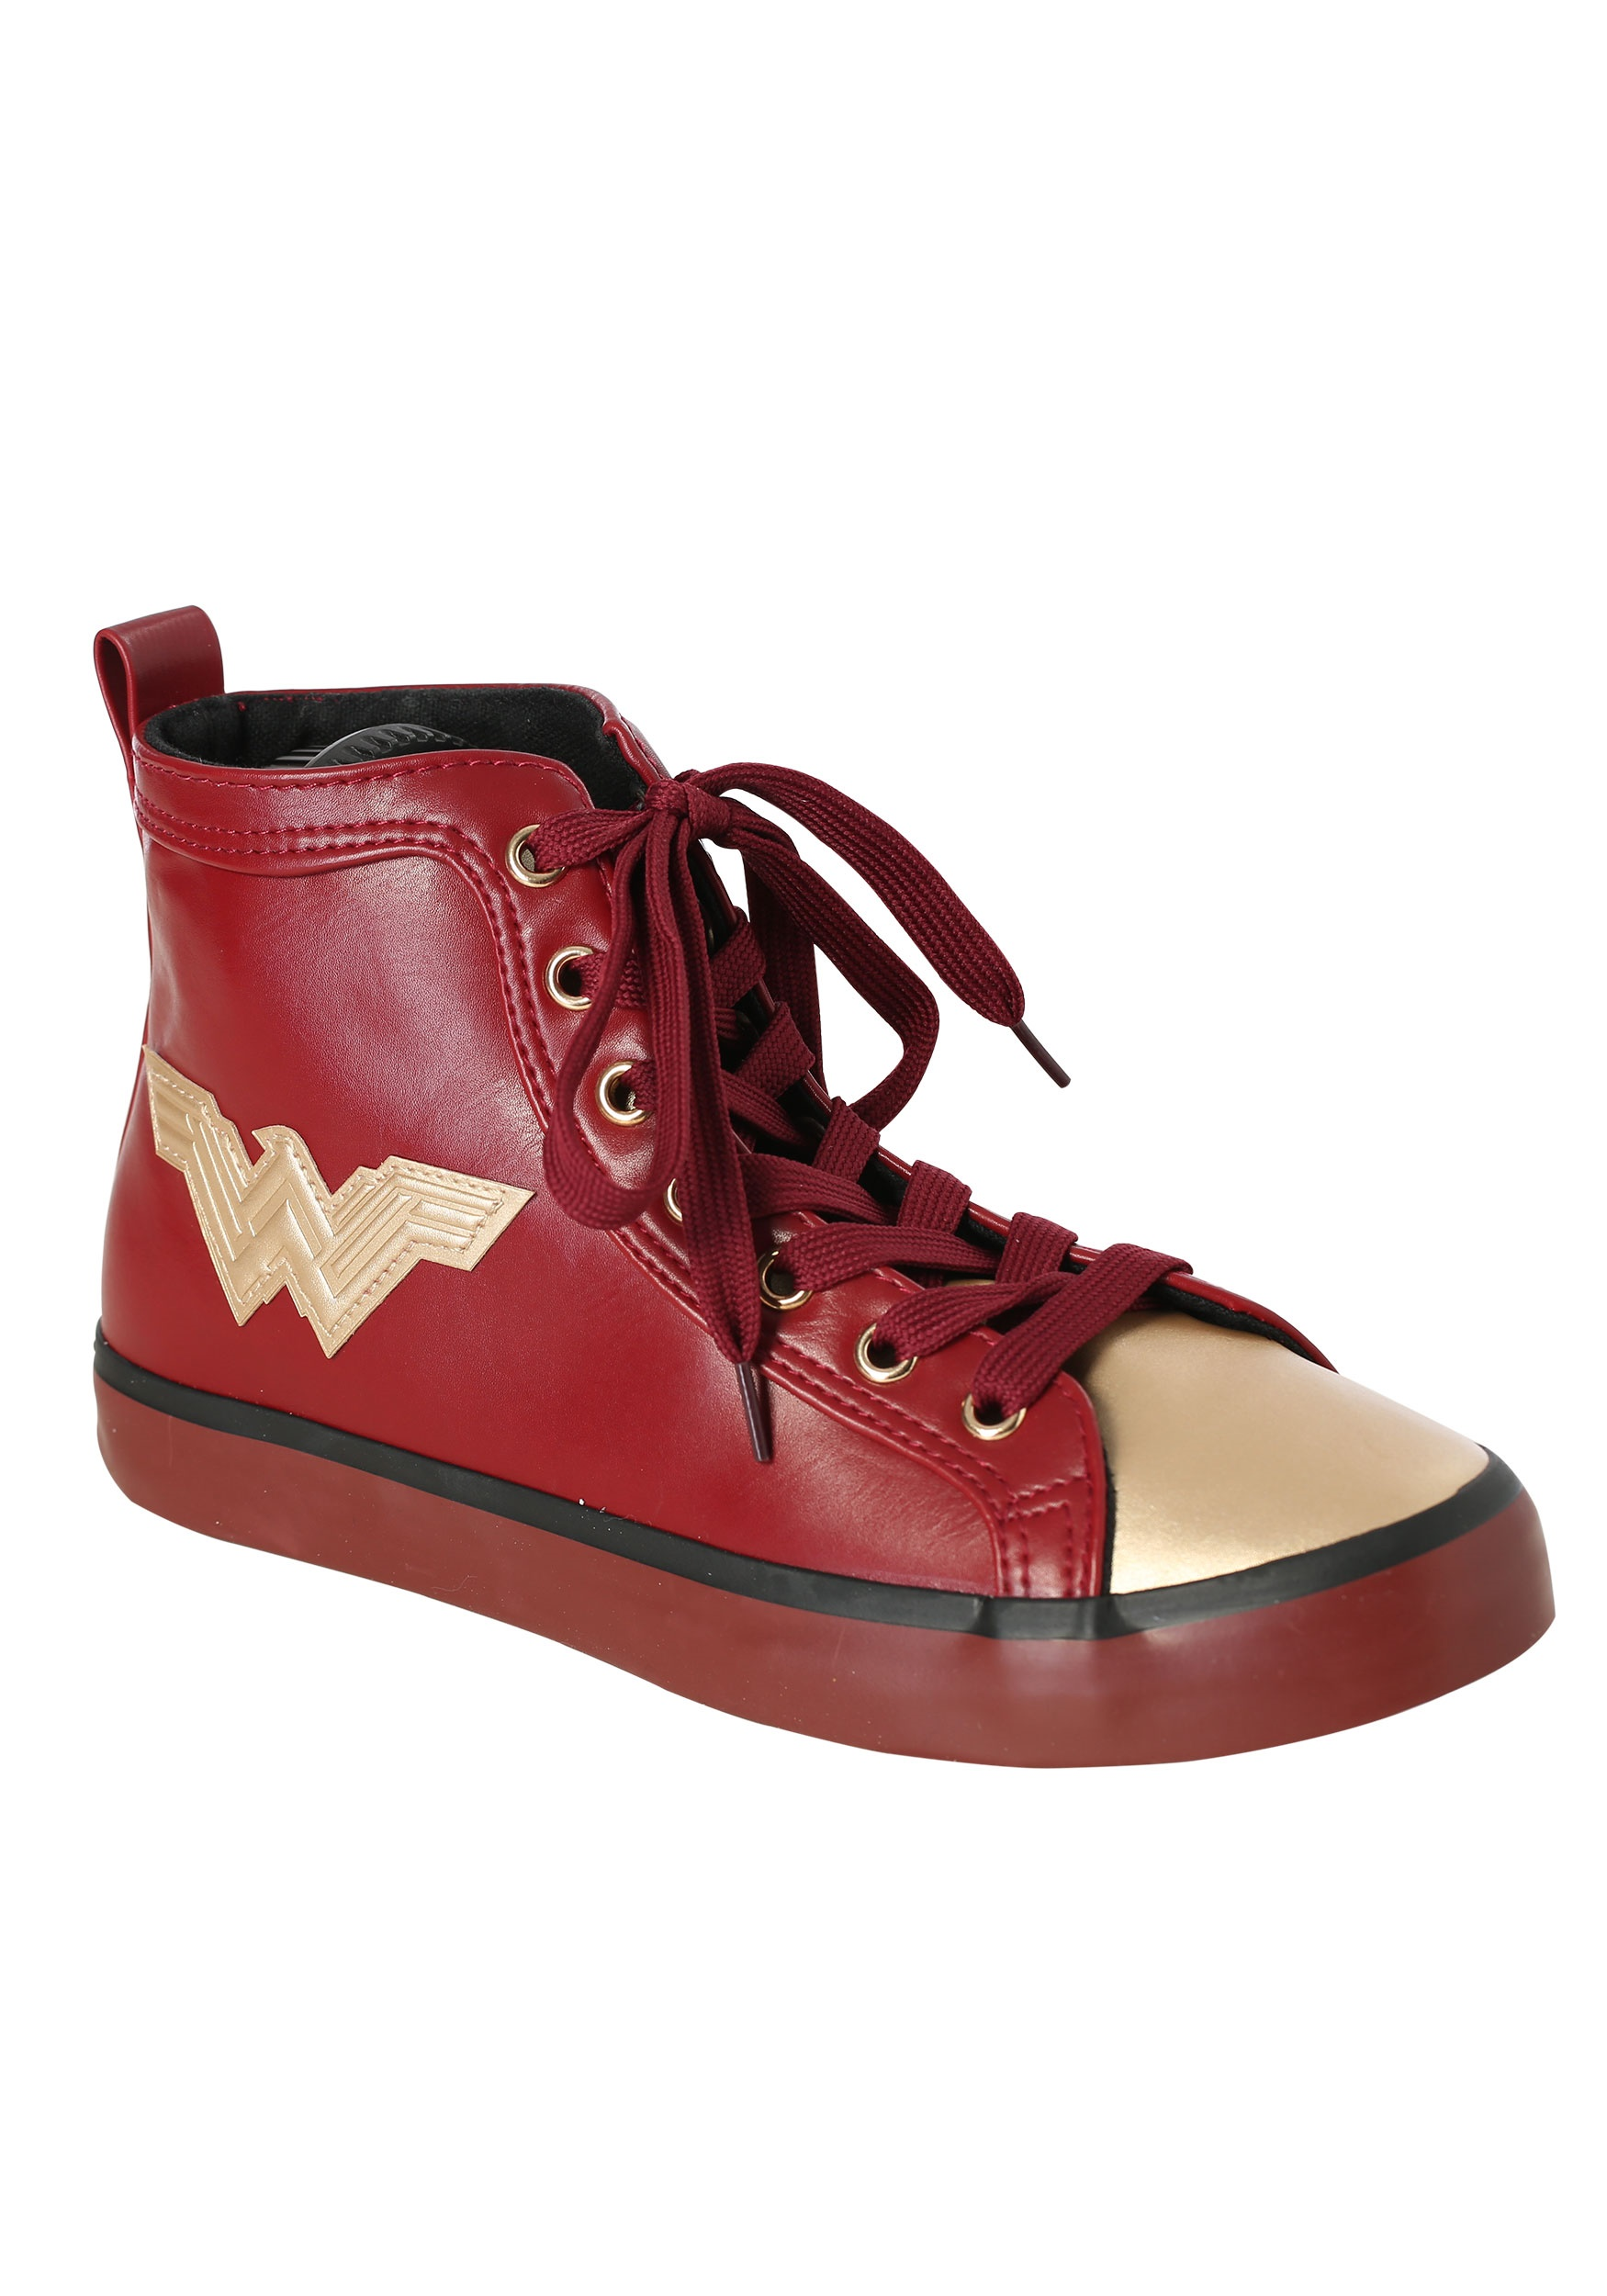 Wonder Woman Gifts - Gift Ideas for Women and Girls 01cda5c6c3ad